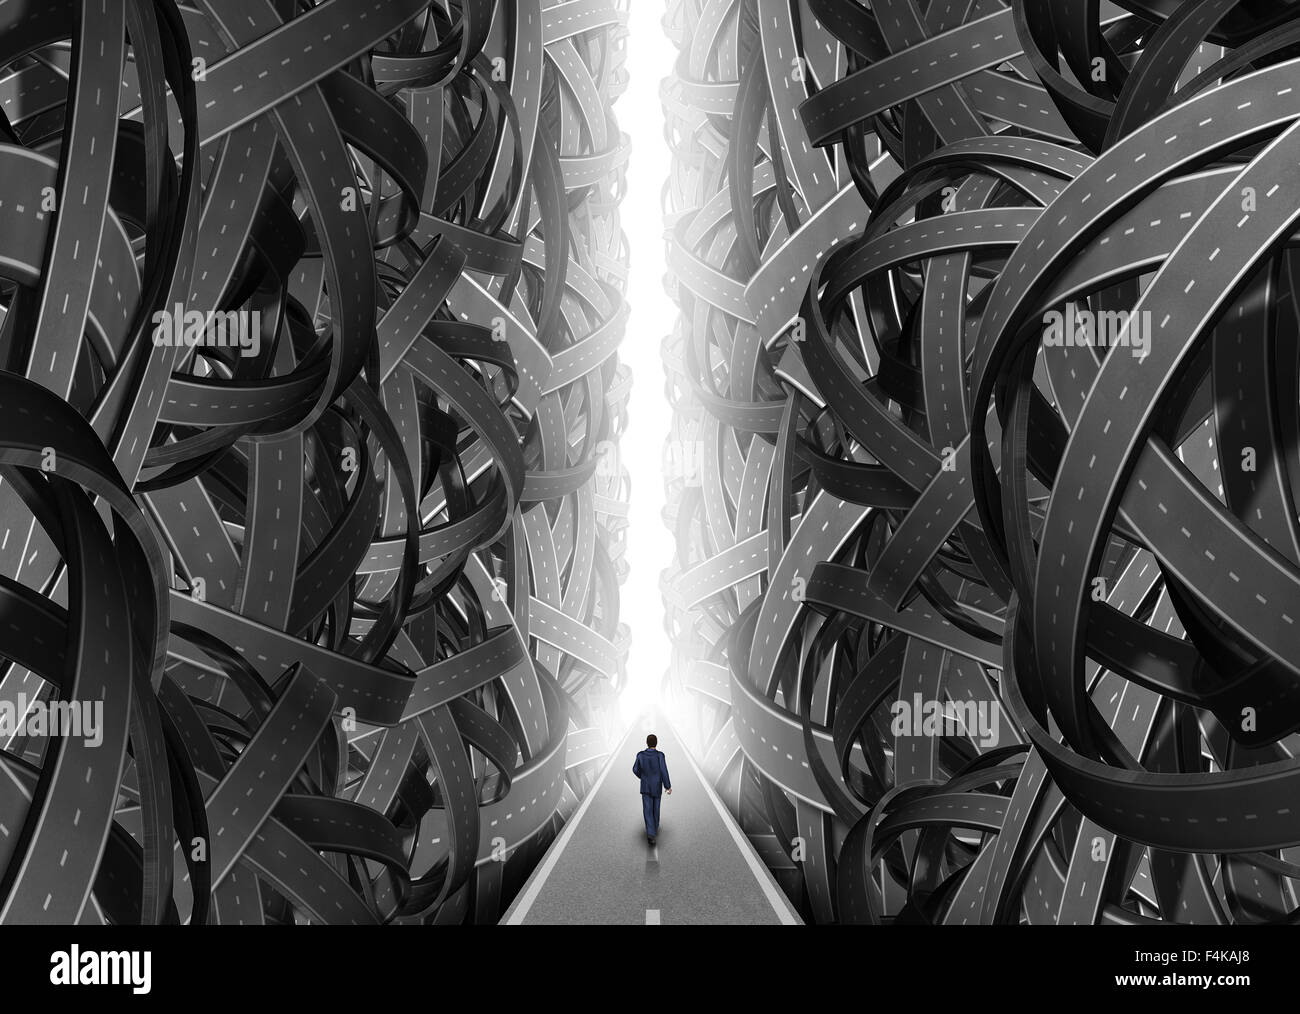 Confusion pathway concept as a businessman walking on a straight  glowing path through an opening of confused roads - Stock Image